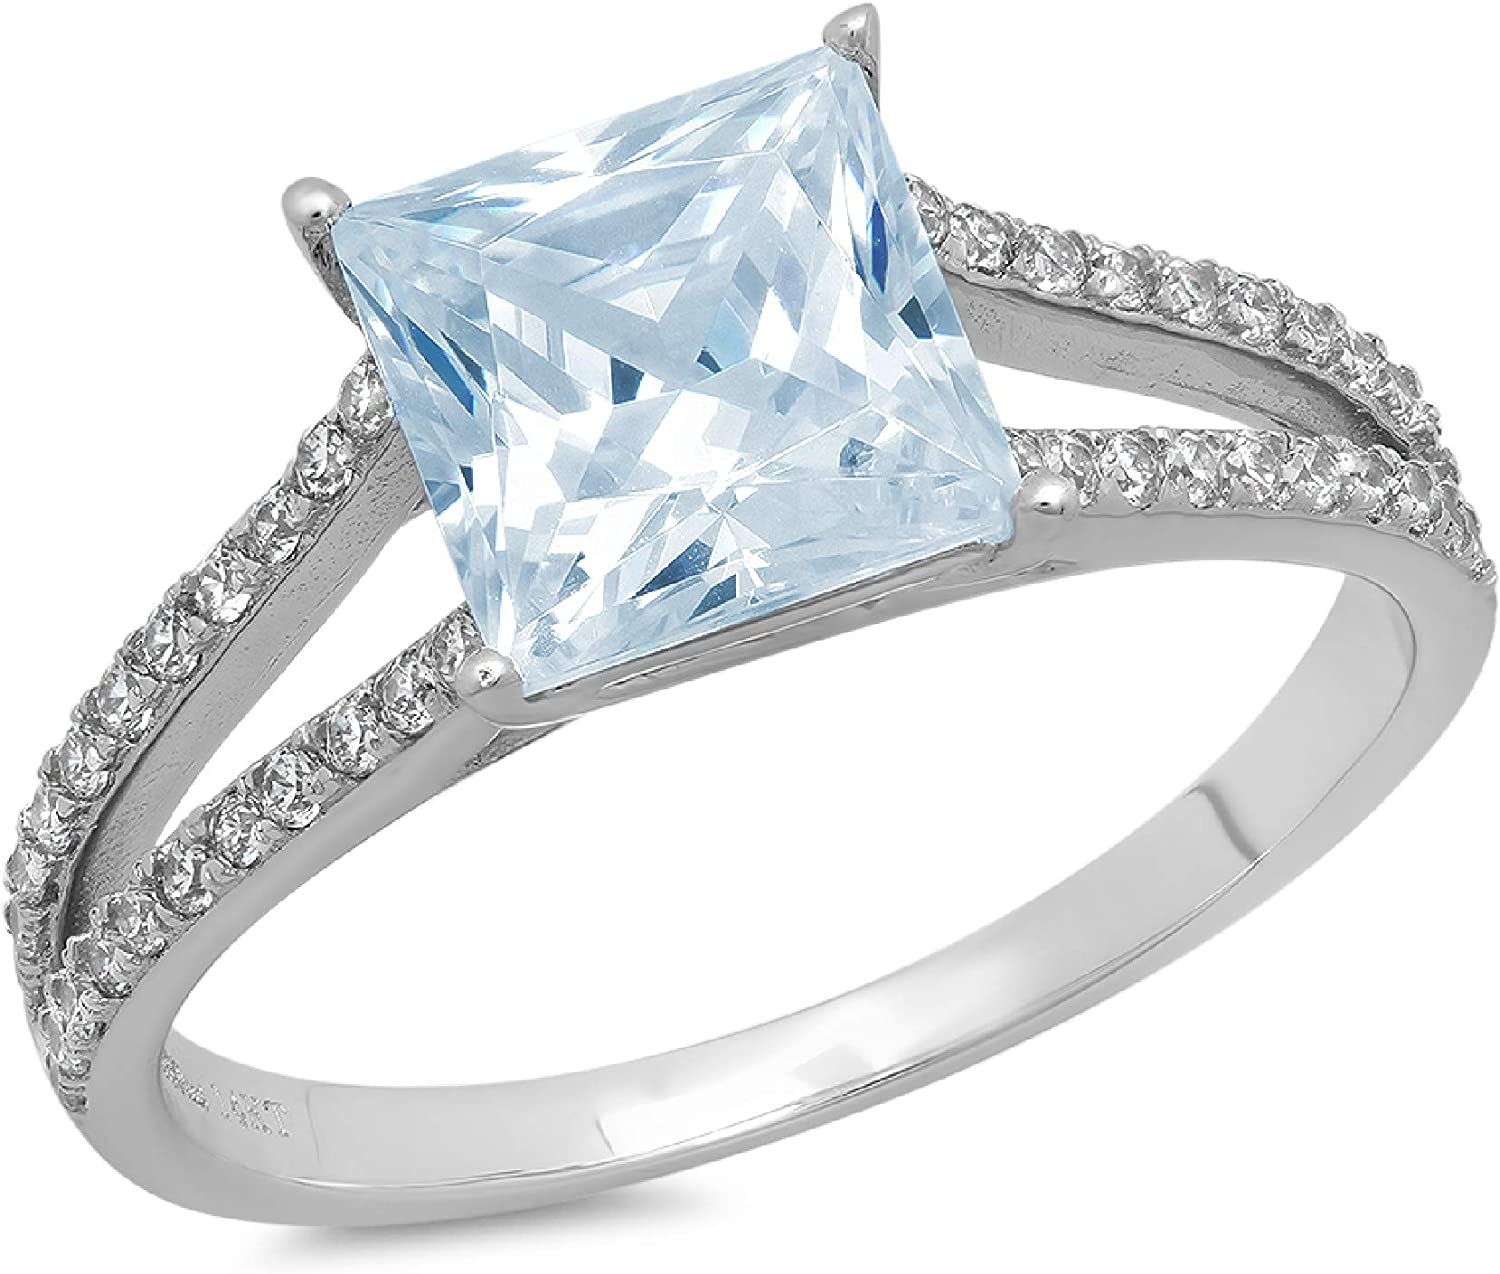 2.42 ct Princess Cut Solitaire with Accent split shank Natural Topaz Gem Stone Ideal VVS1 Engagement Promise Statement Anniversary Bridal Wedding Ring 14k White Gold